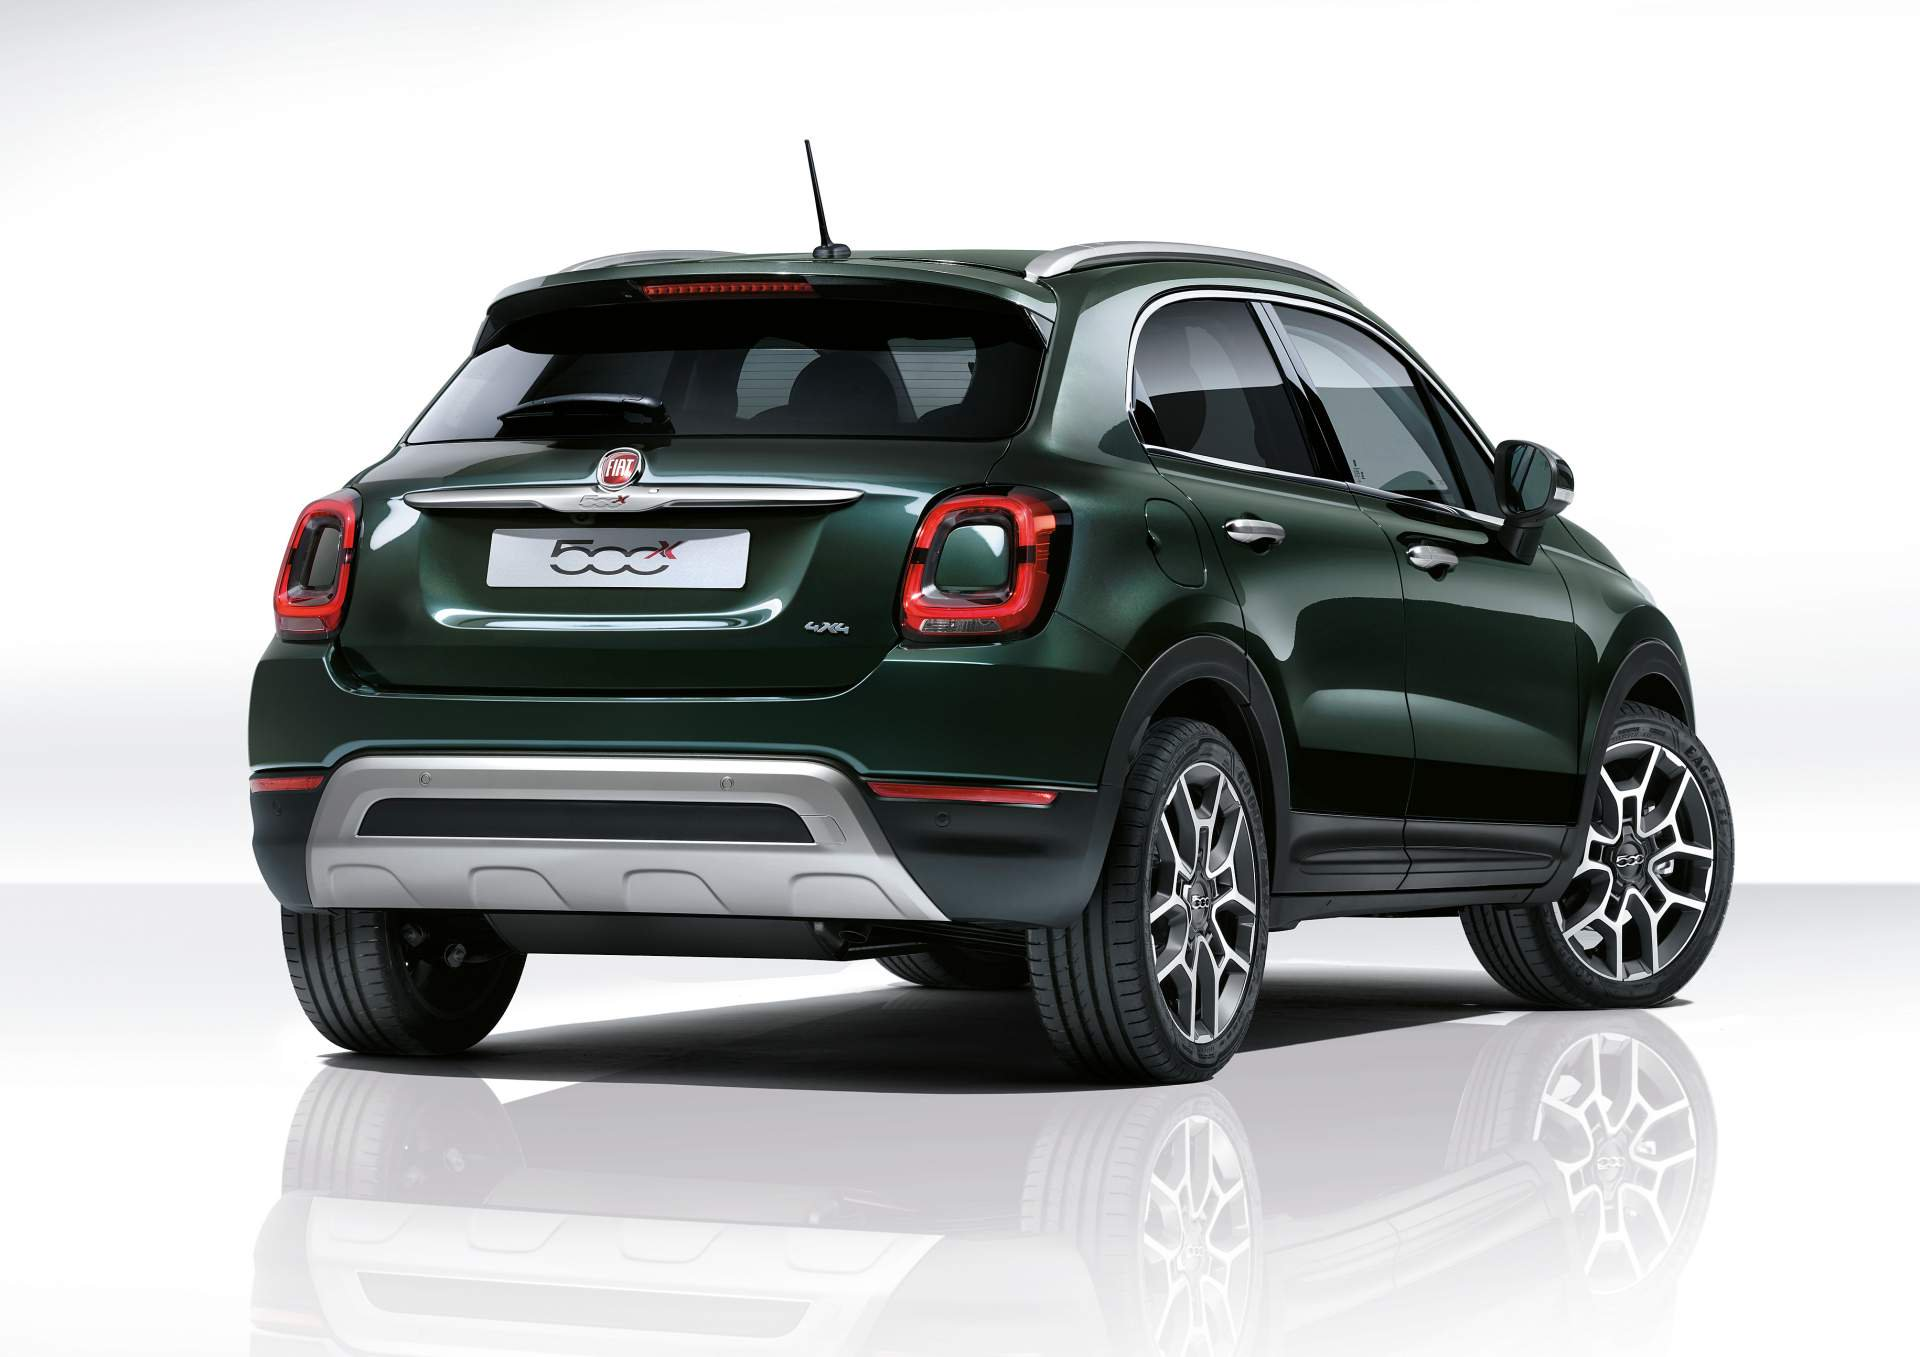 5ooblog | FIAT 5oo: Fiat 500 - pimped out Abarth |Tricked Out Fiat 500x